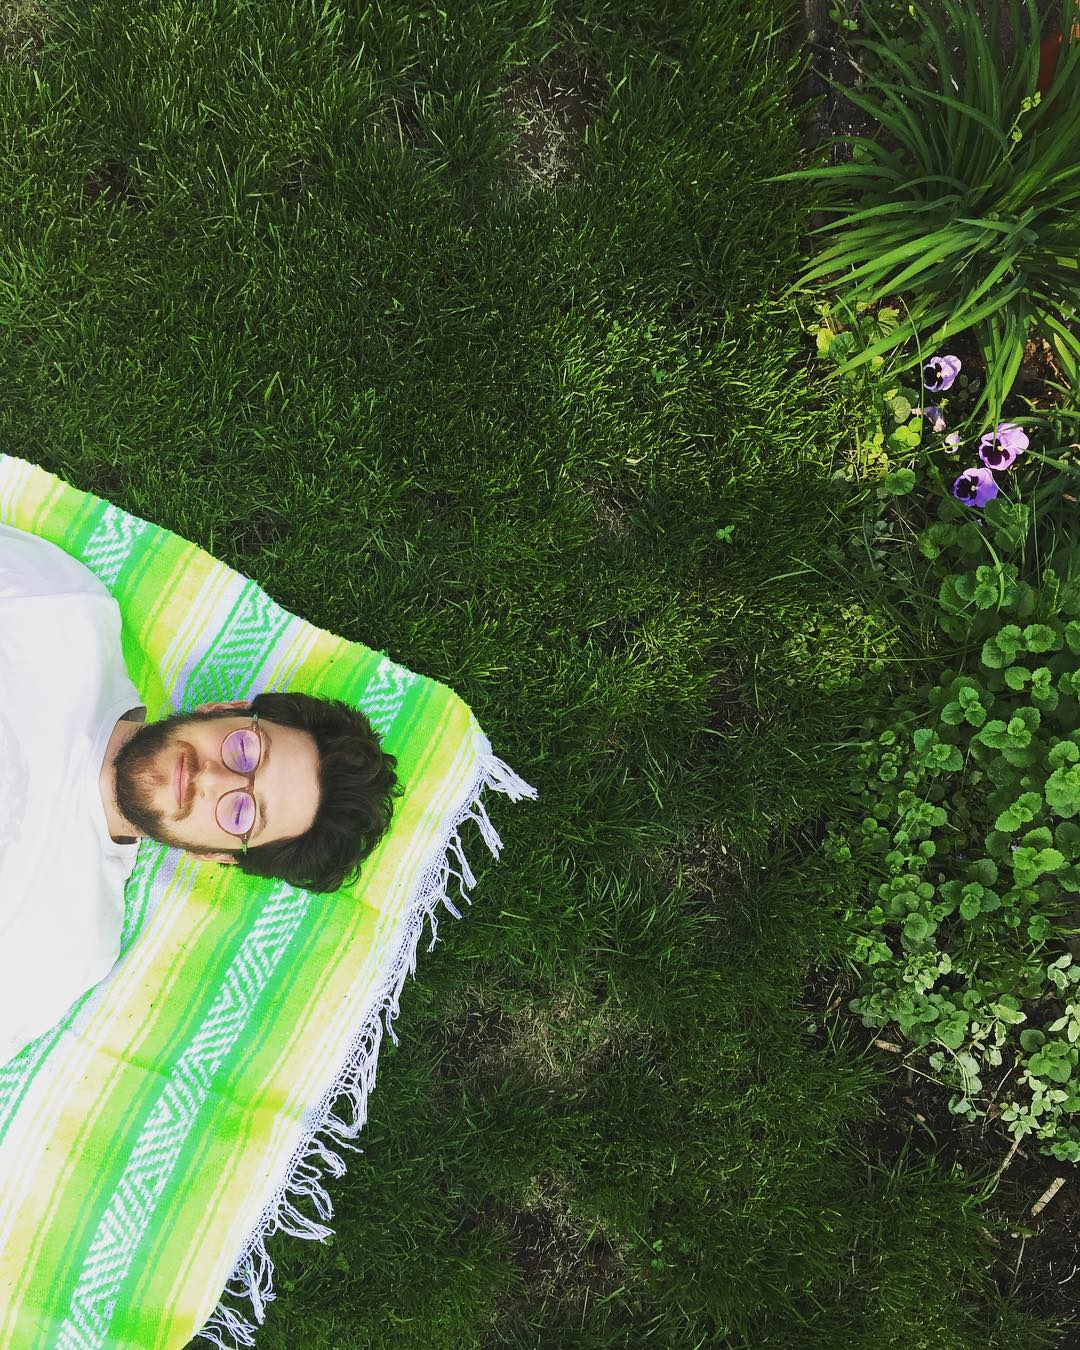 Jordan lying on a blanket in the grass